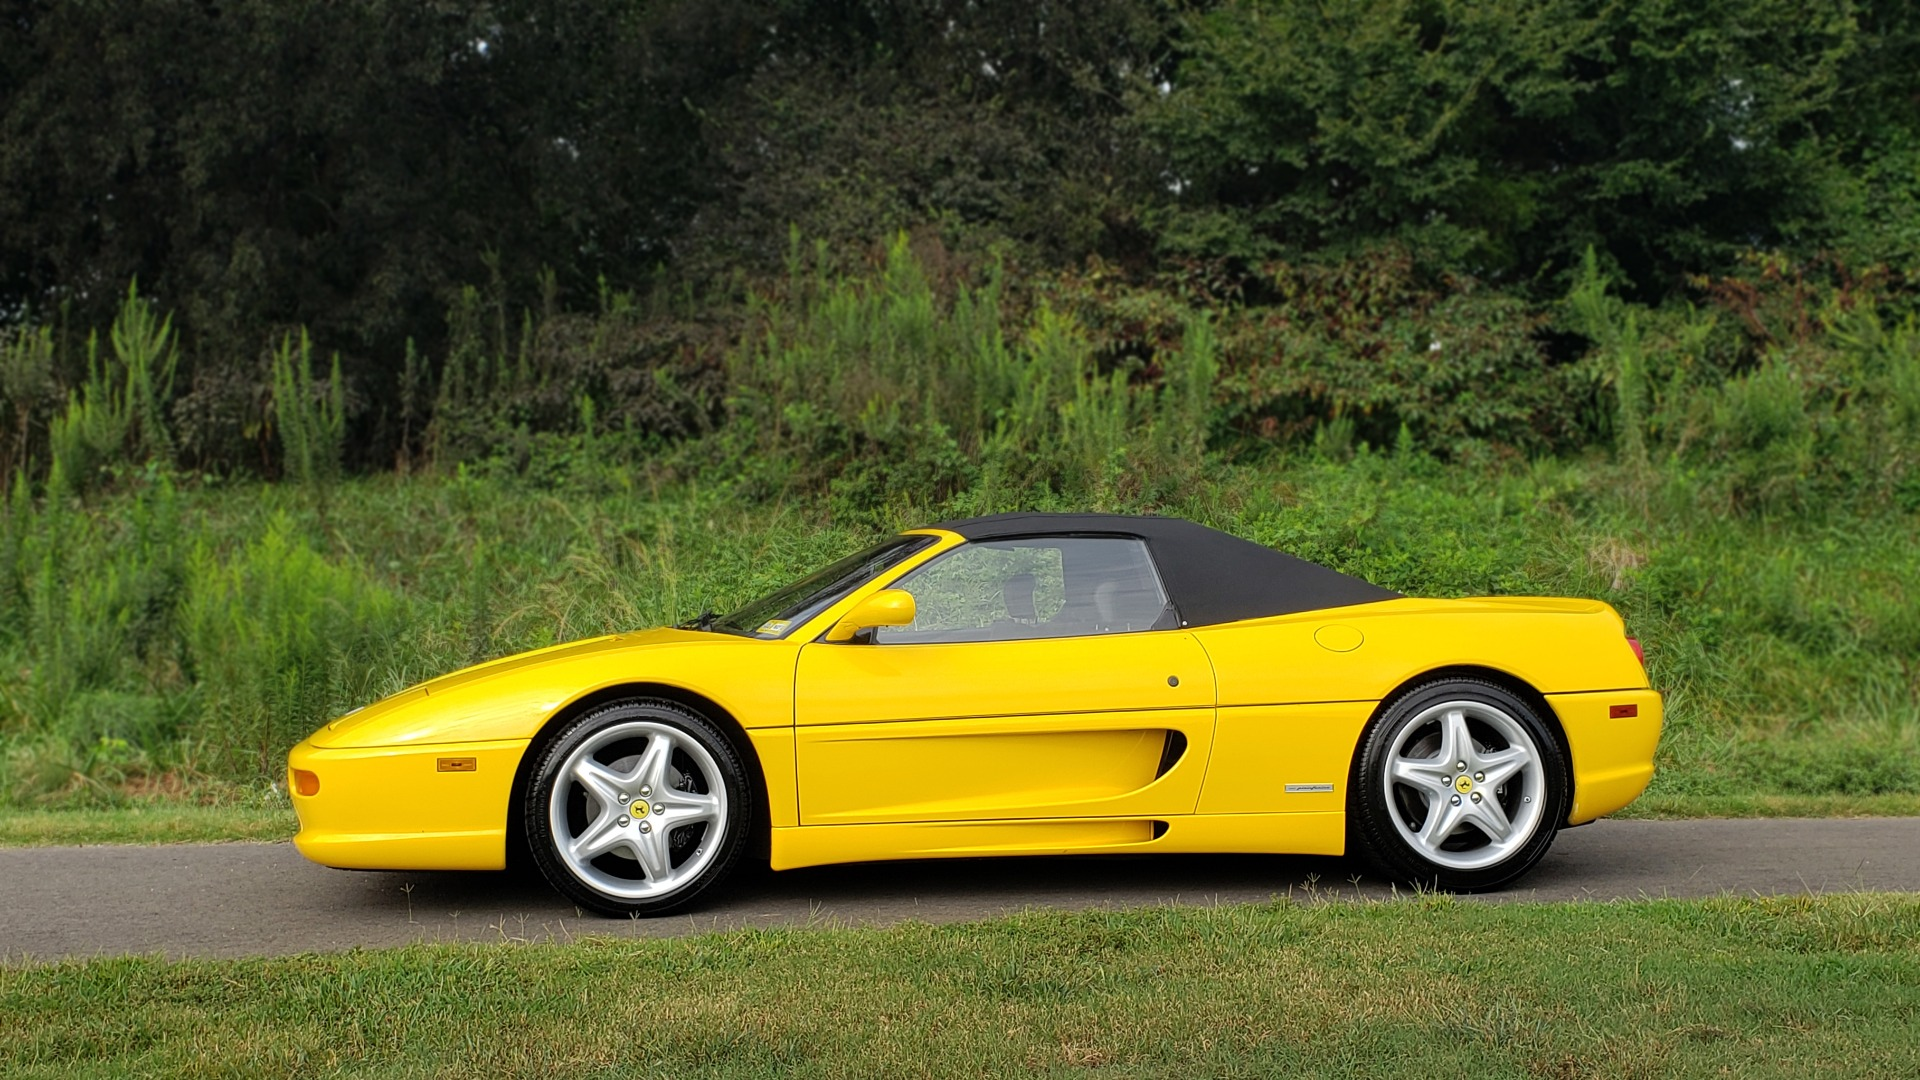 Used 1996 Ferrari F355 SPIDER / GATED 6-SPEED MANUAL / LOW MILES / NEW TIRES for sale $95,999 at Formula Imports in Charlotte NC 28227 7